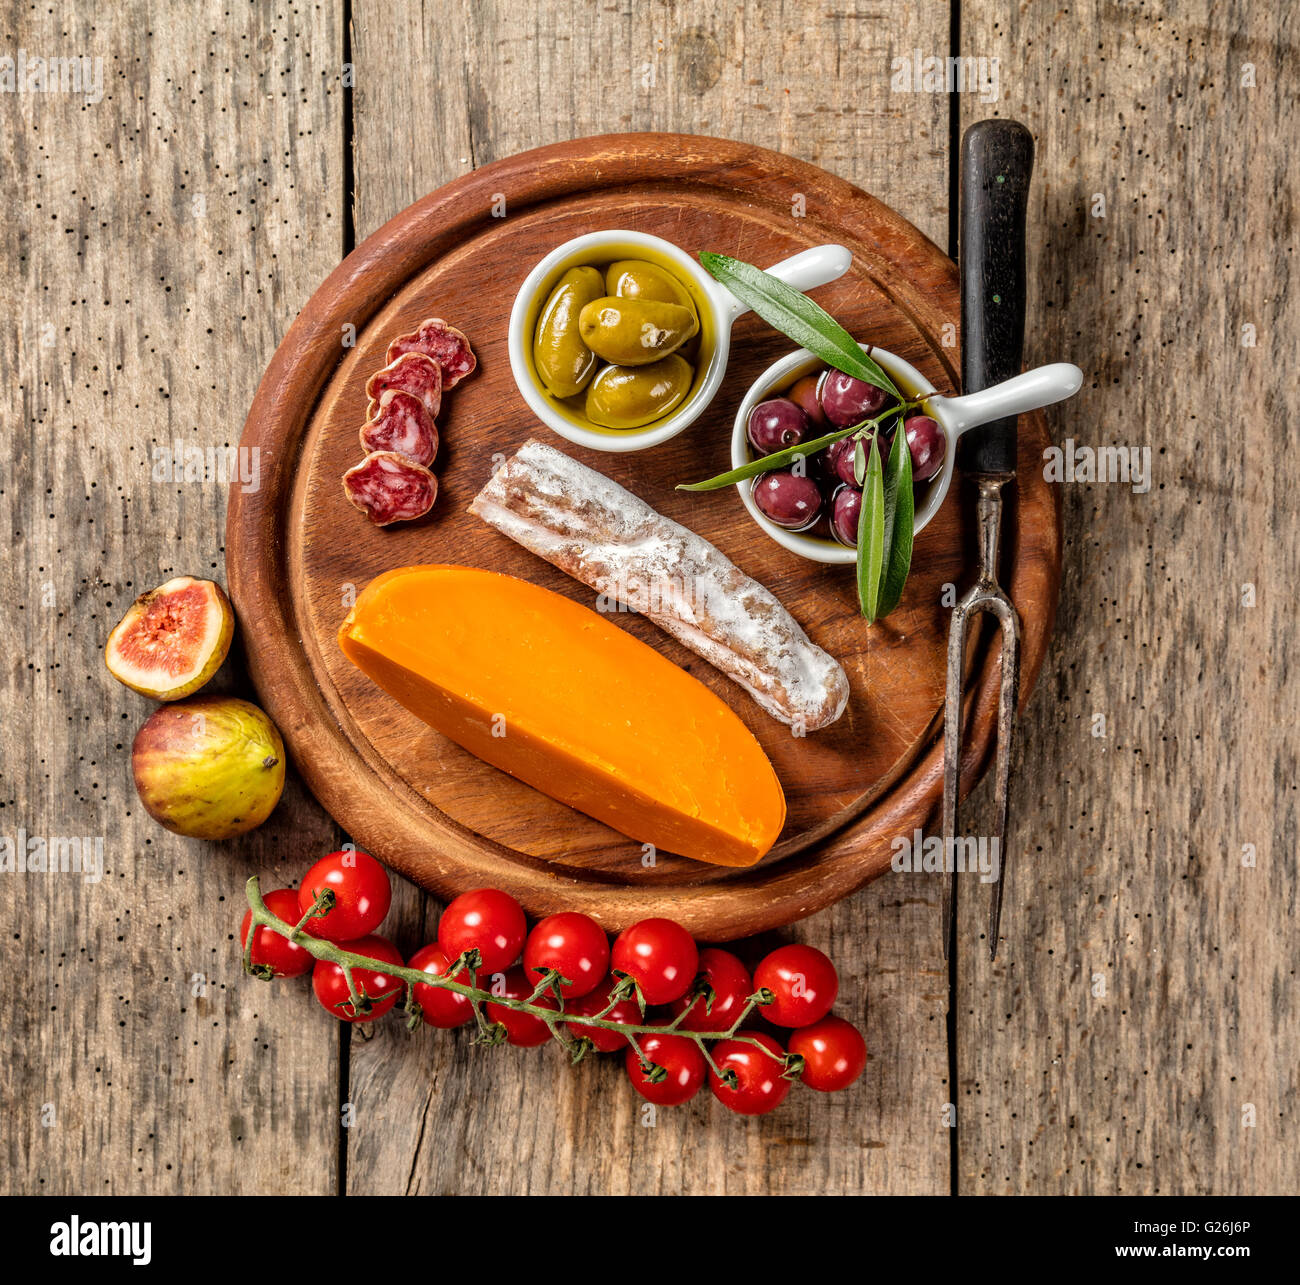 Various kind of traditional cheese and delicacy suitable for wine, placed on wooden cutting board, shot from high - Stock Image